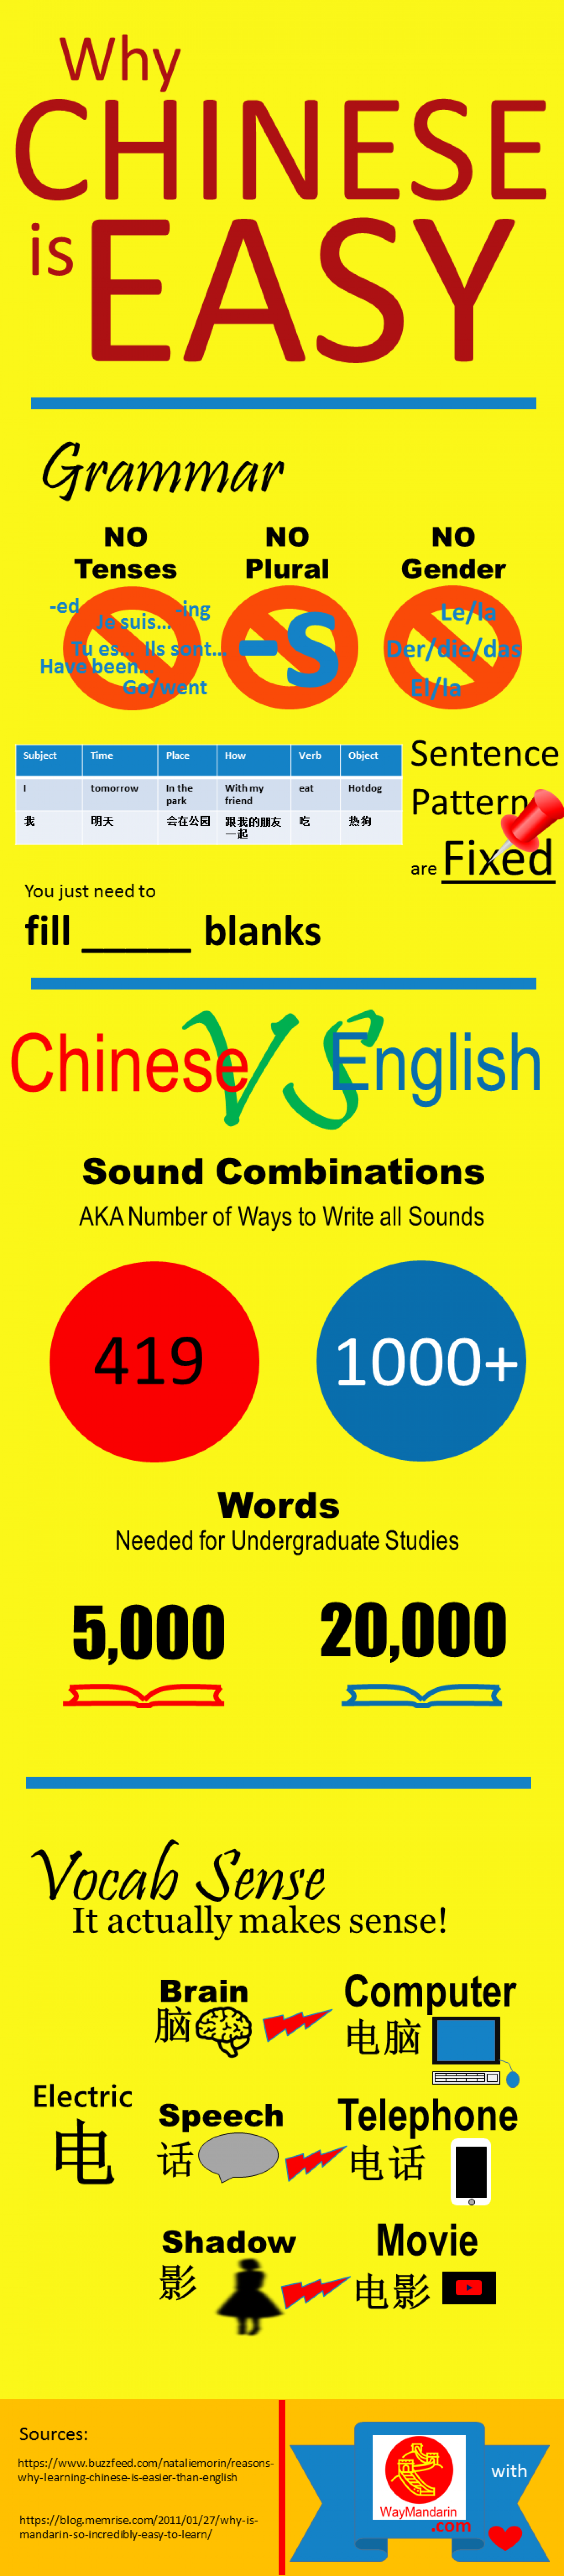 Chinese is Easy. You Just Think It's Hard. Infographic